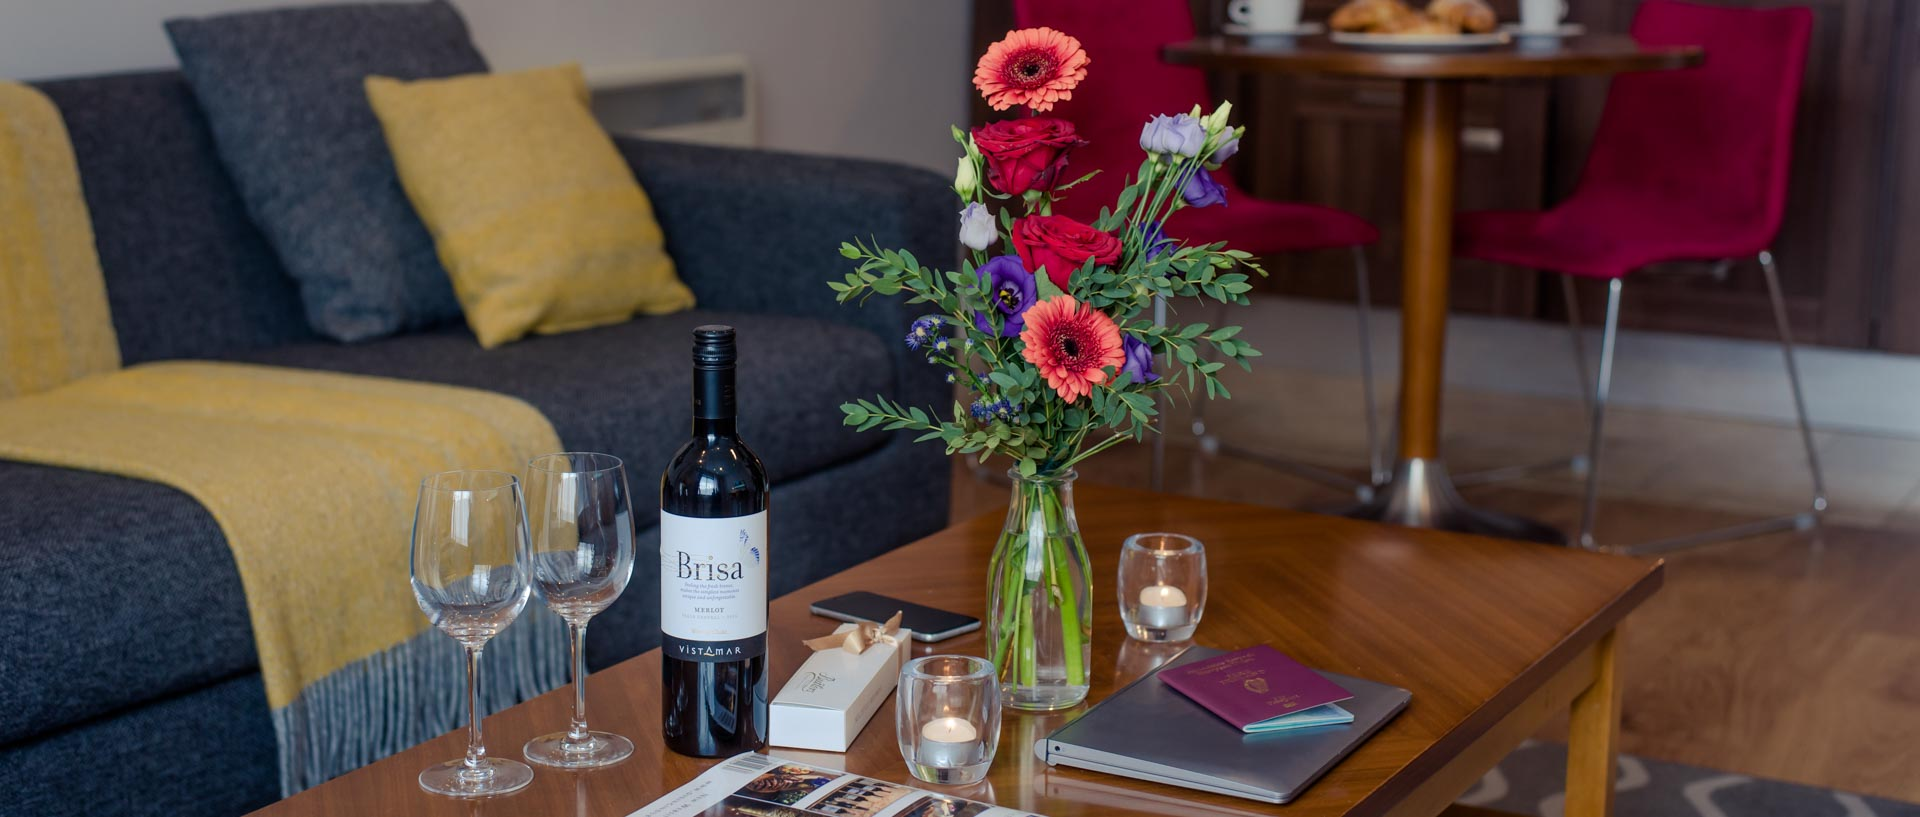 PREMIER SUITES PLUS Leeson Street table flowers